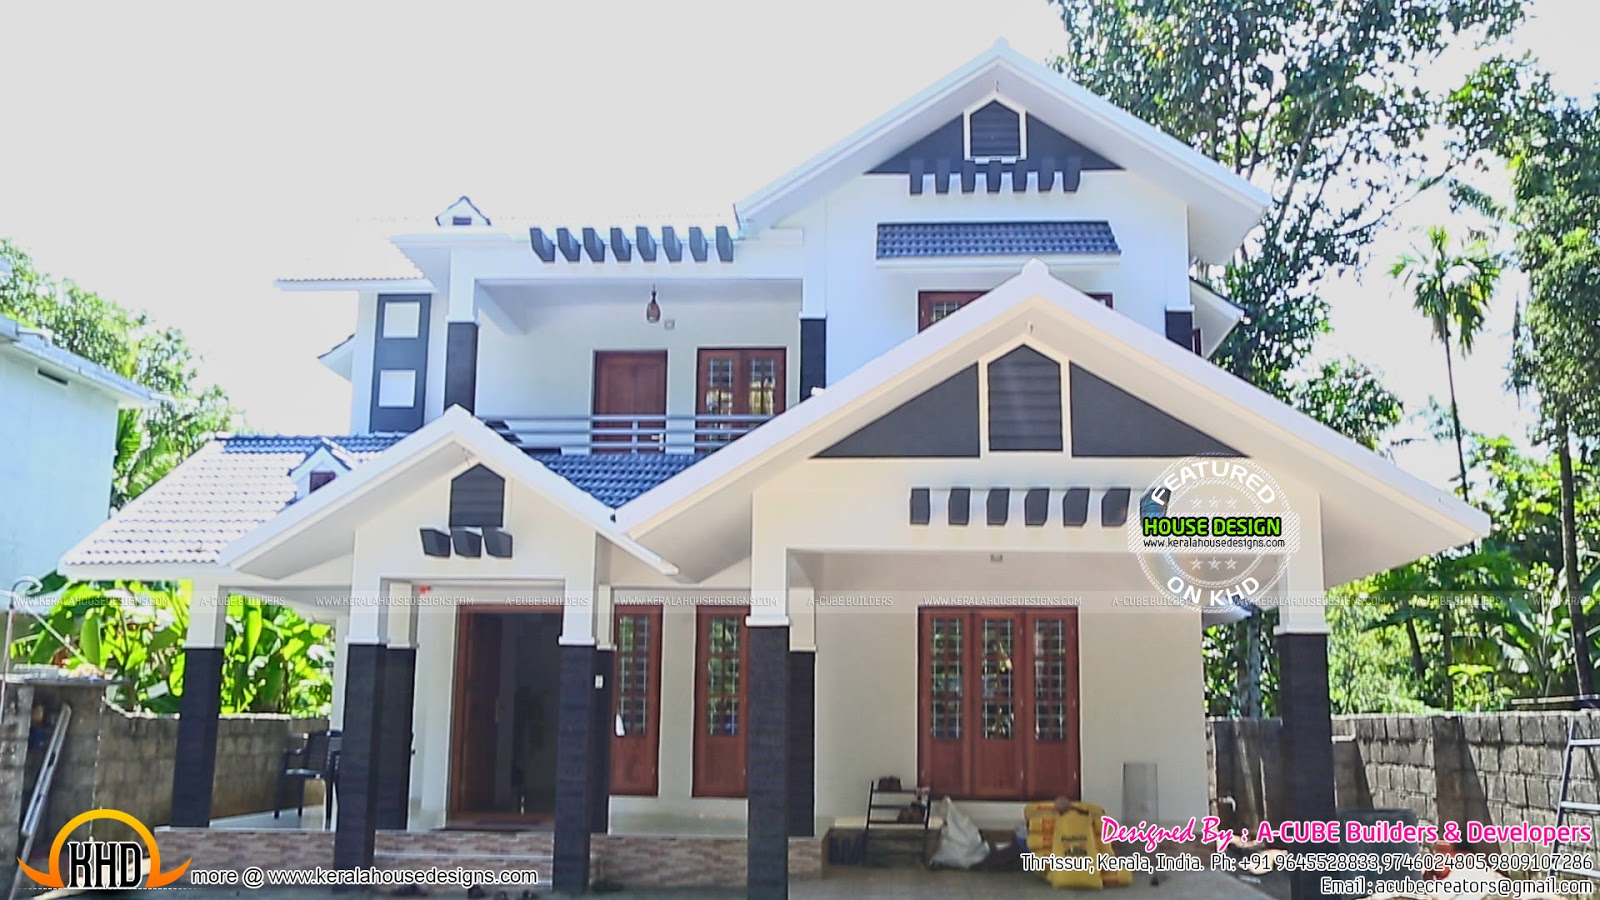 New house plans for 2016 starts here kerala home design for Pictures of house designs and floor plans